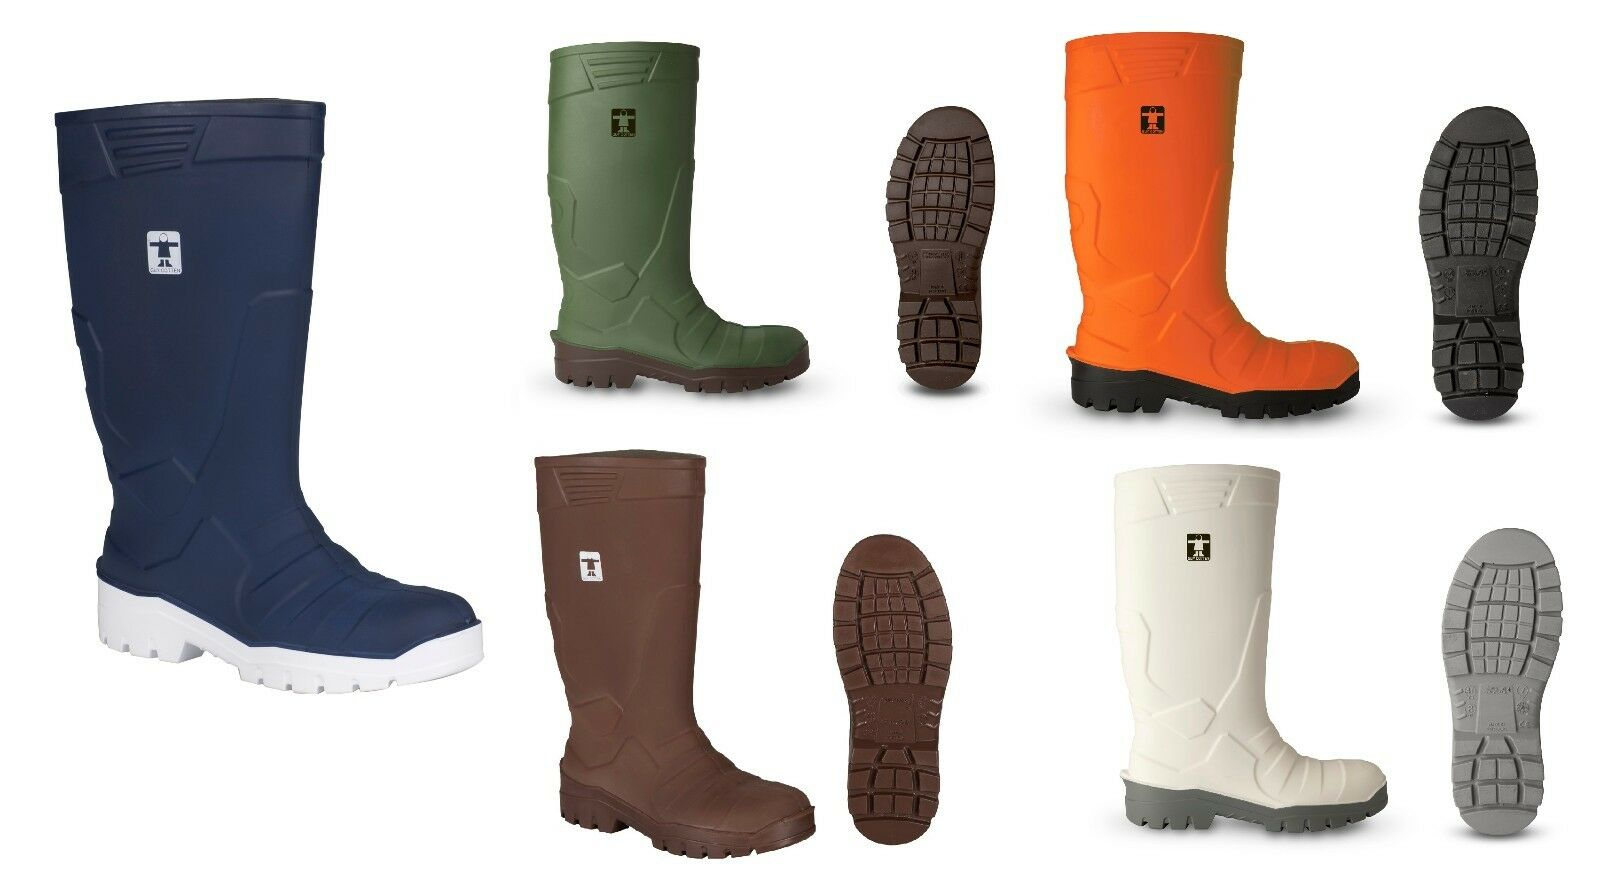 Guy cotten GC Ultralite Wellington Boots   Peach Clean  & Processing  high-quality merchandise and convenient, honest service